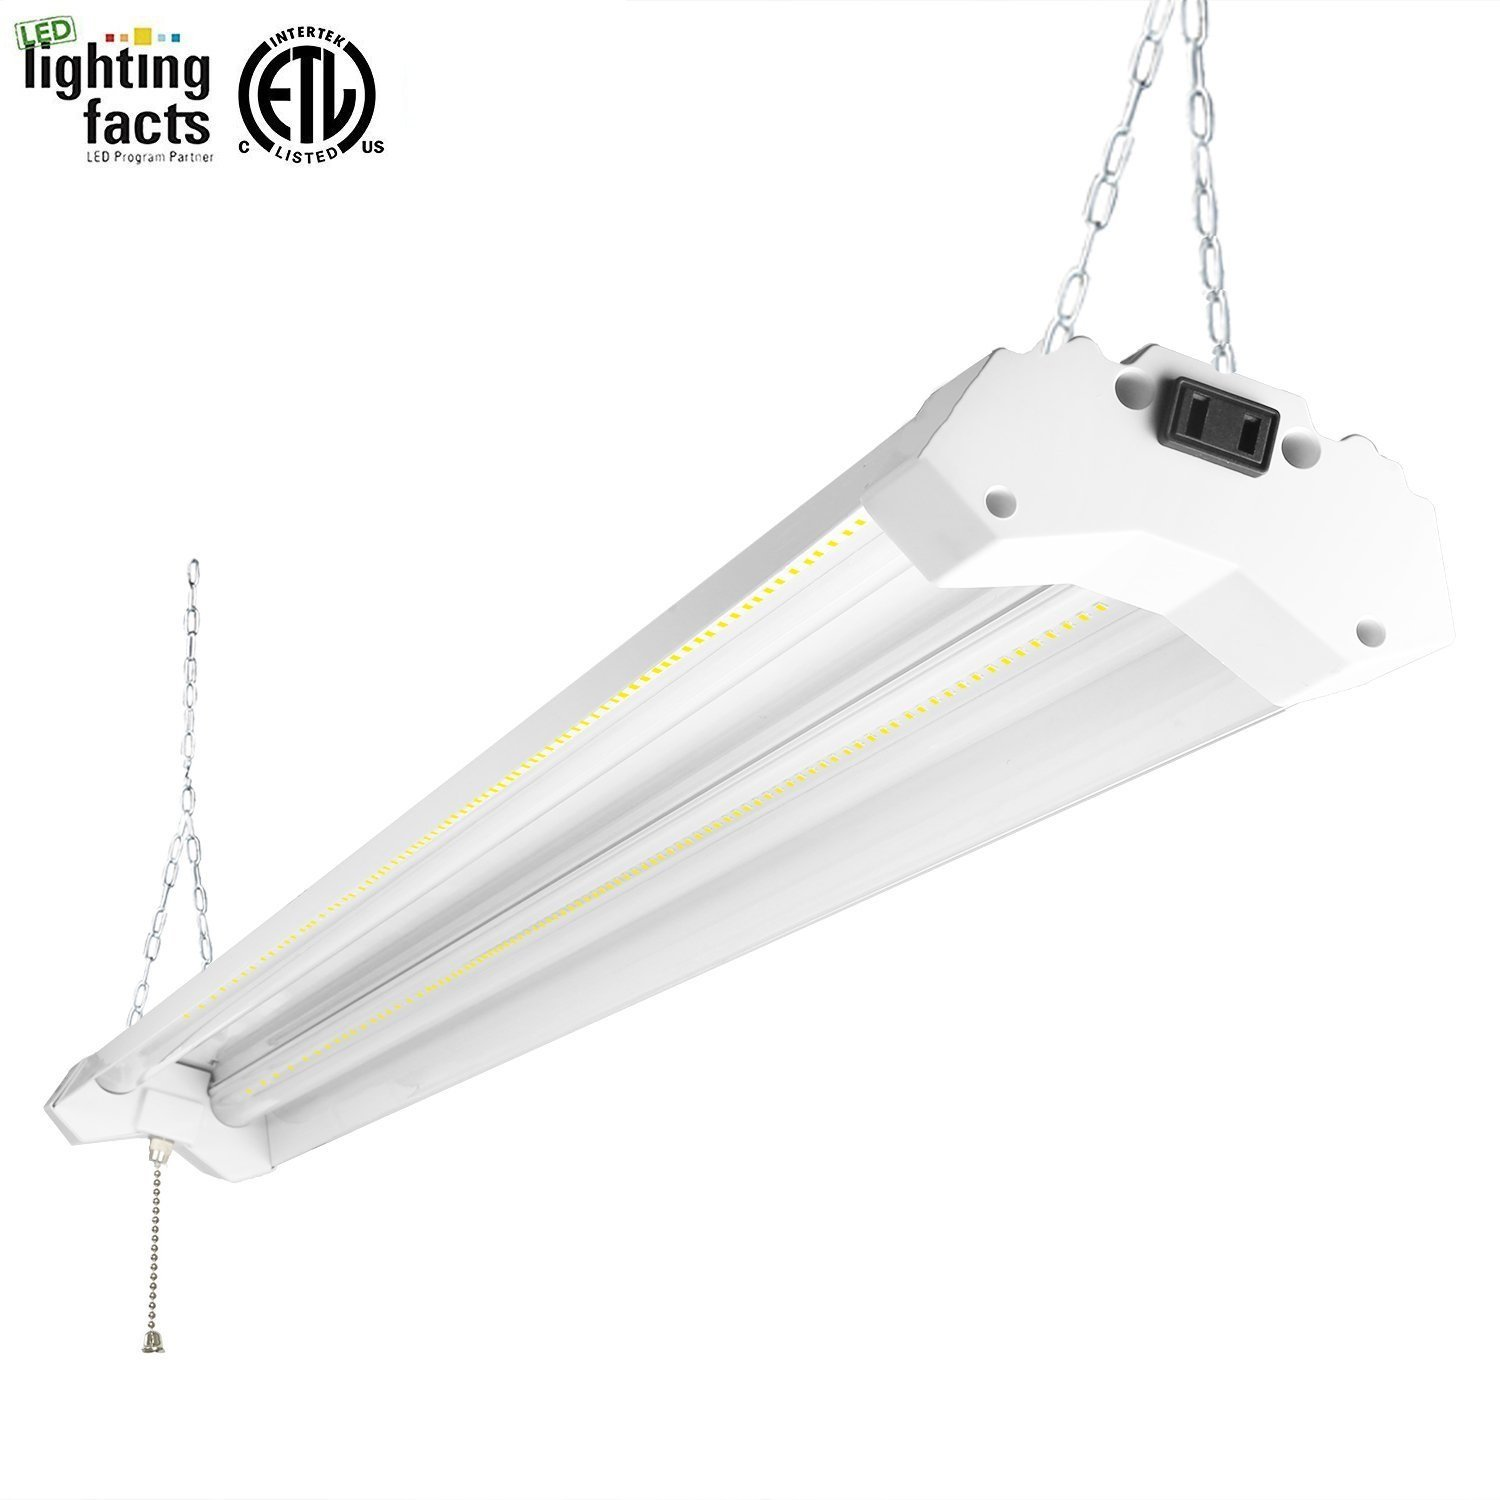 61m0DKFSSRL._SL1500_ close to ceiling light fixtures amazon com lighting & ceiling  at readyjetset.co